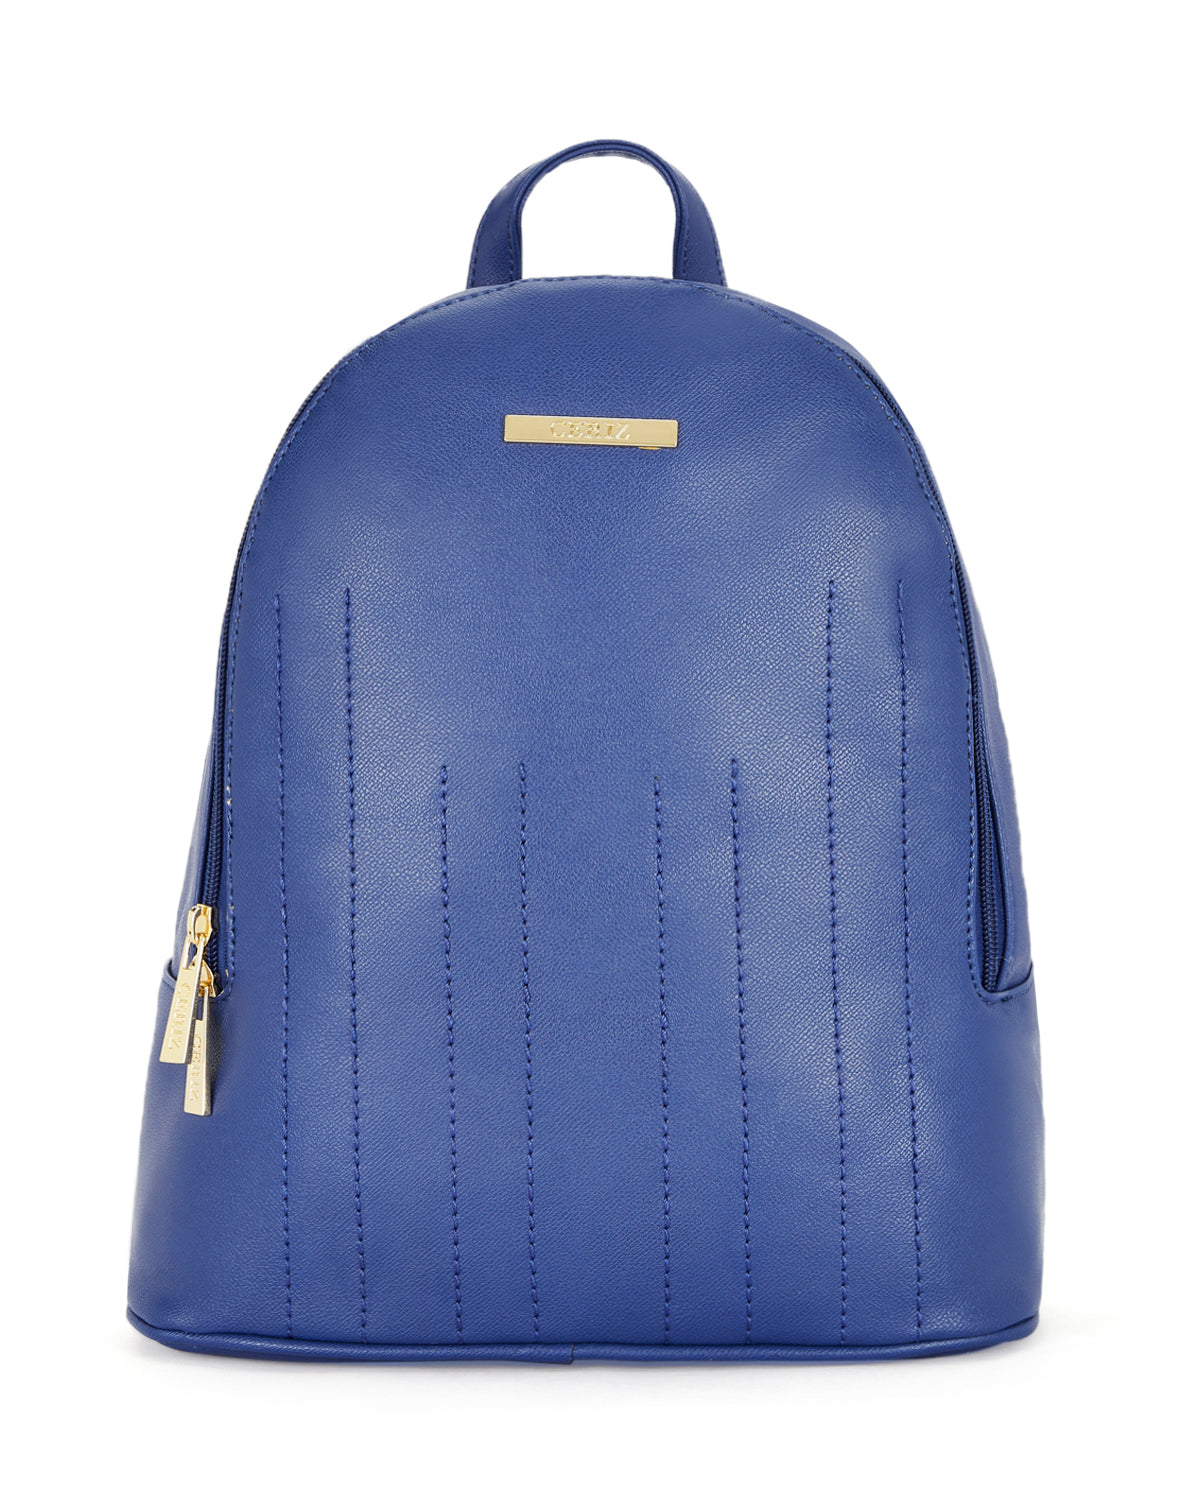 Mila Navy Backpack